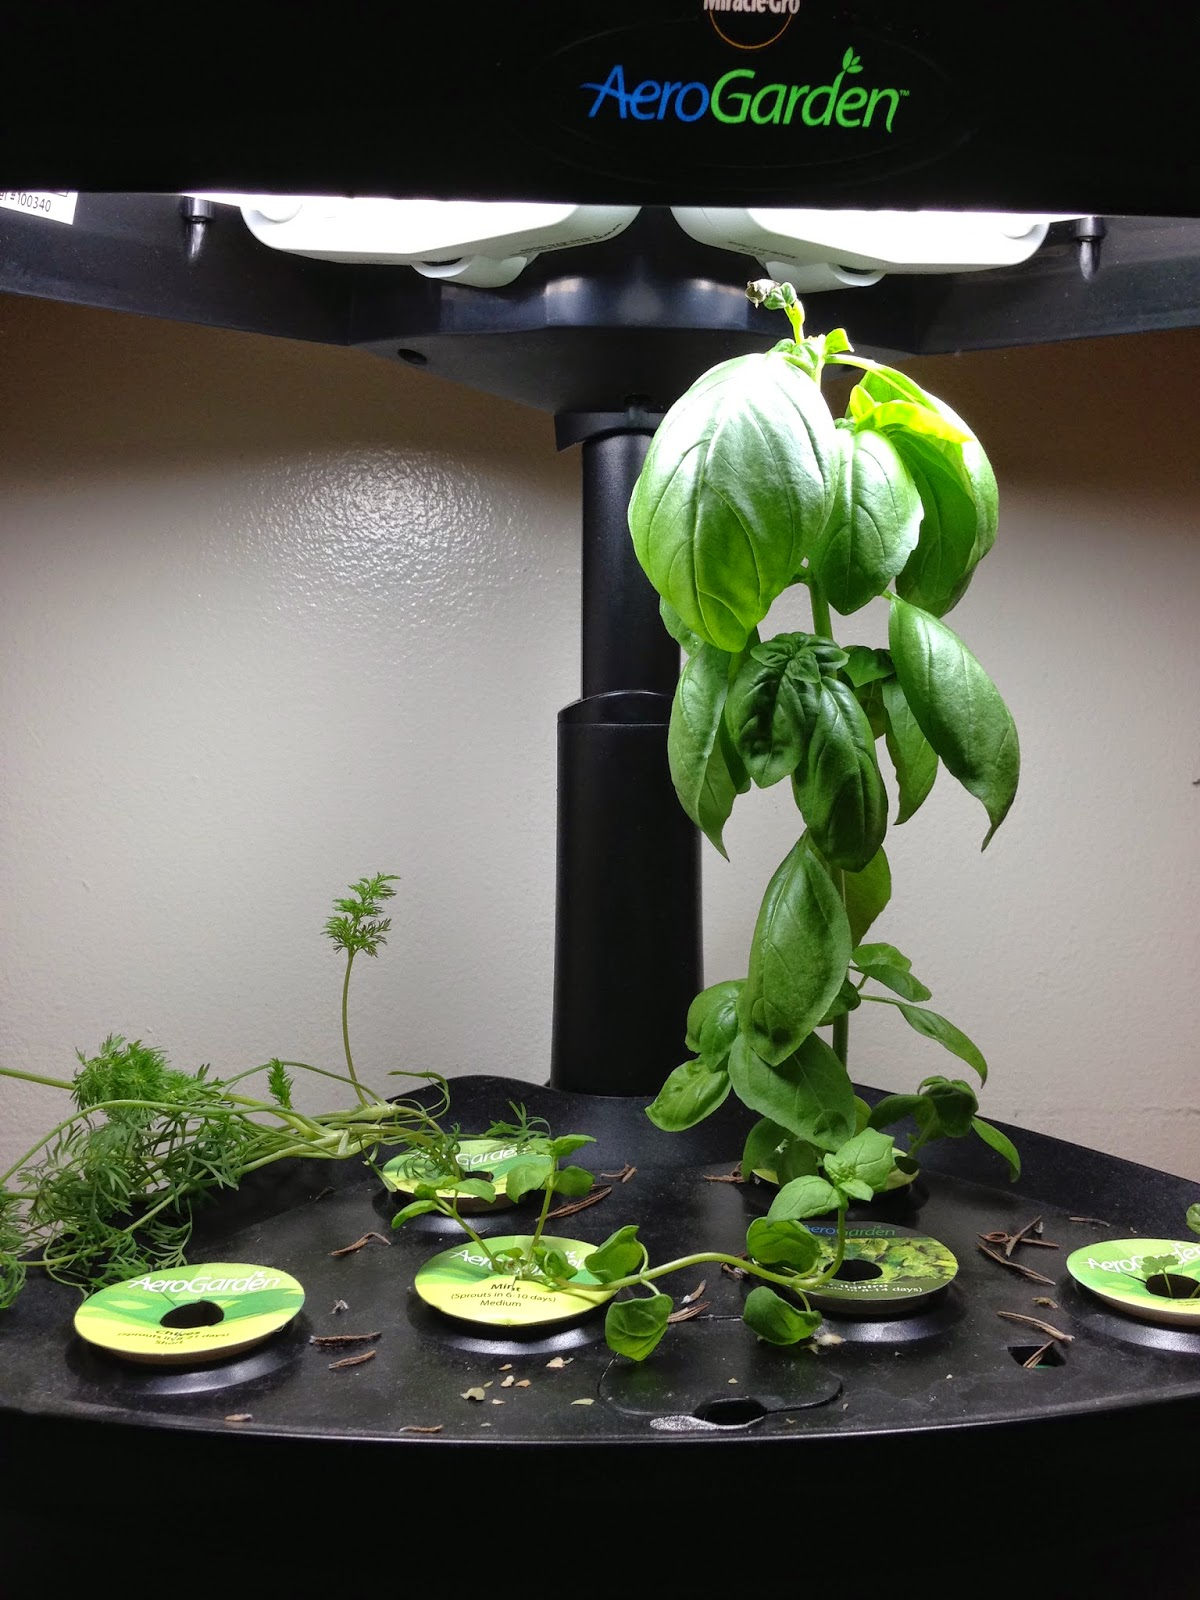 An AeroGarden indoor herb garden makes a great holiday gift!